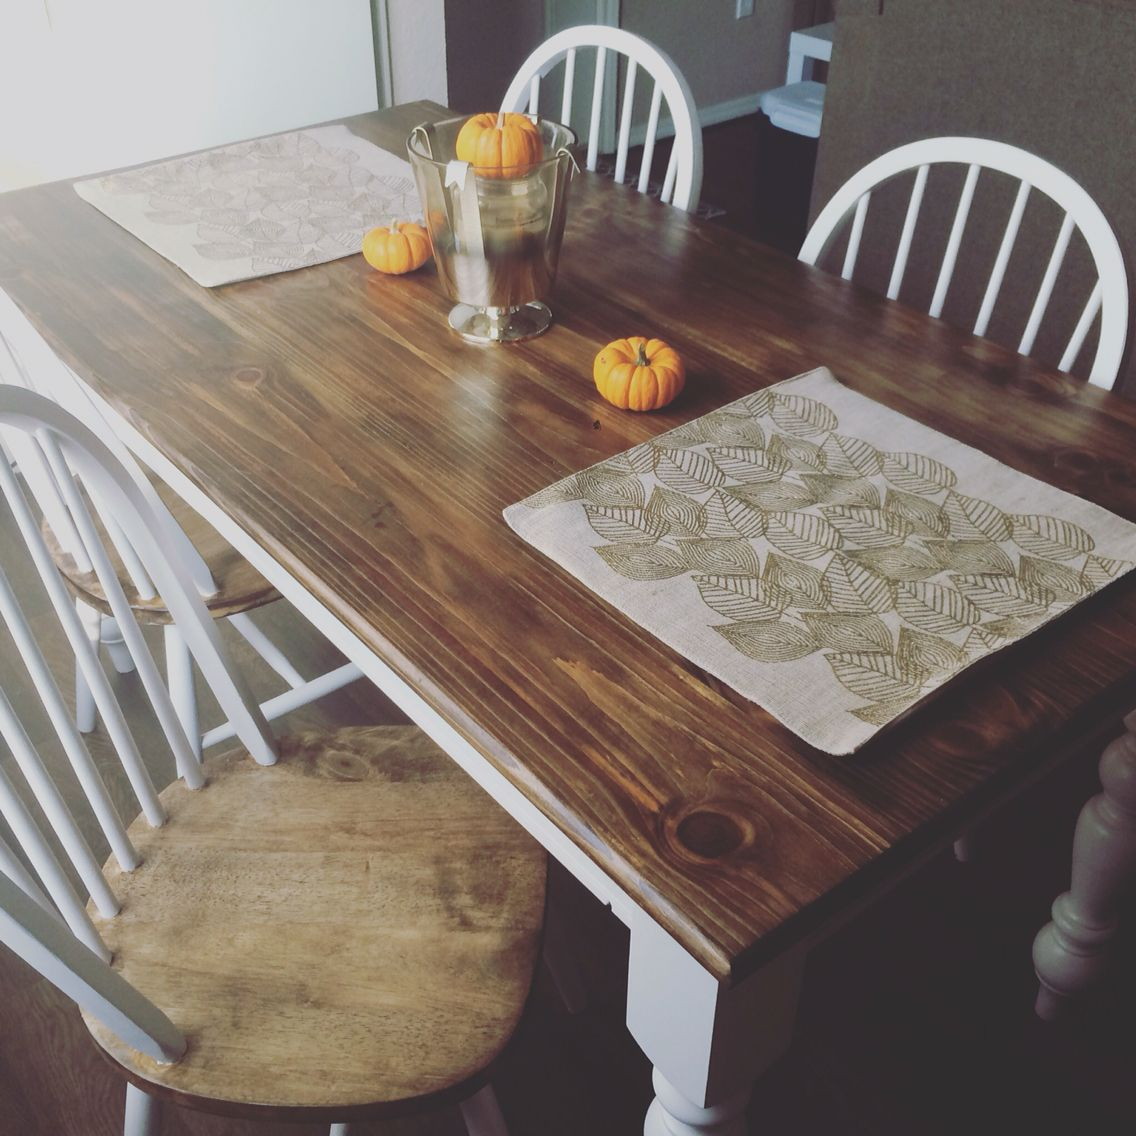 DIY Table Chairs From Garden Ridge Sanded Down Stained Painted Is An Old Display Stein Mart